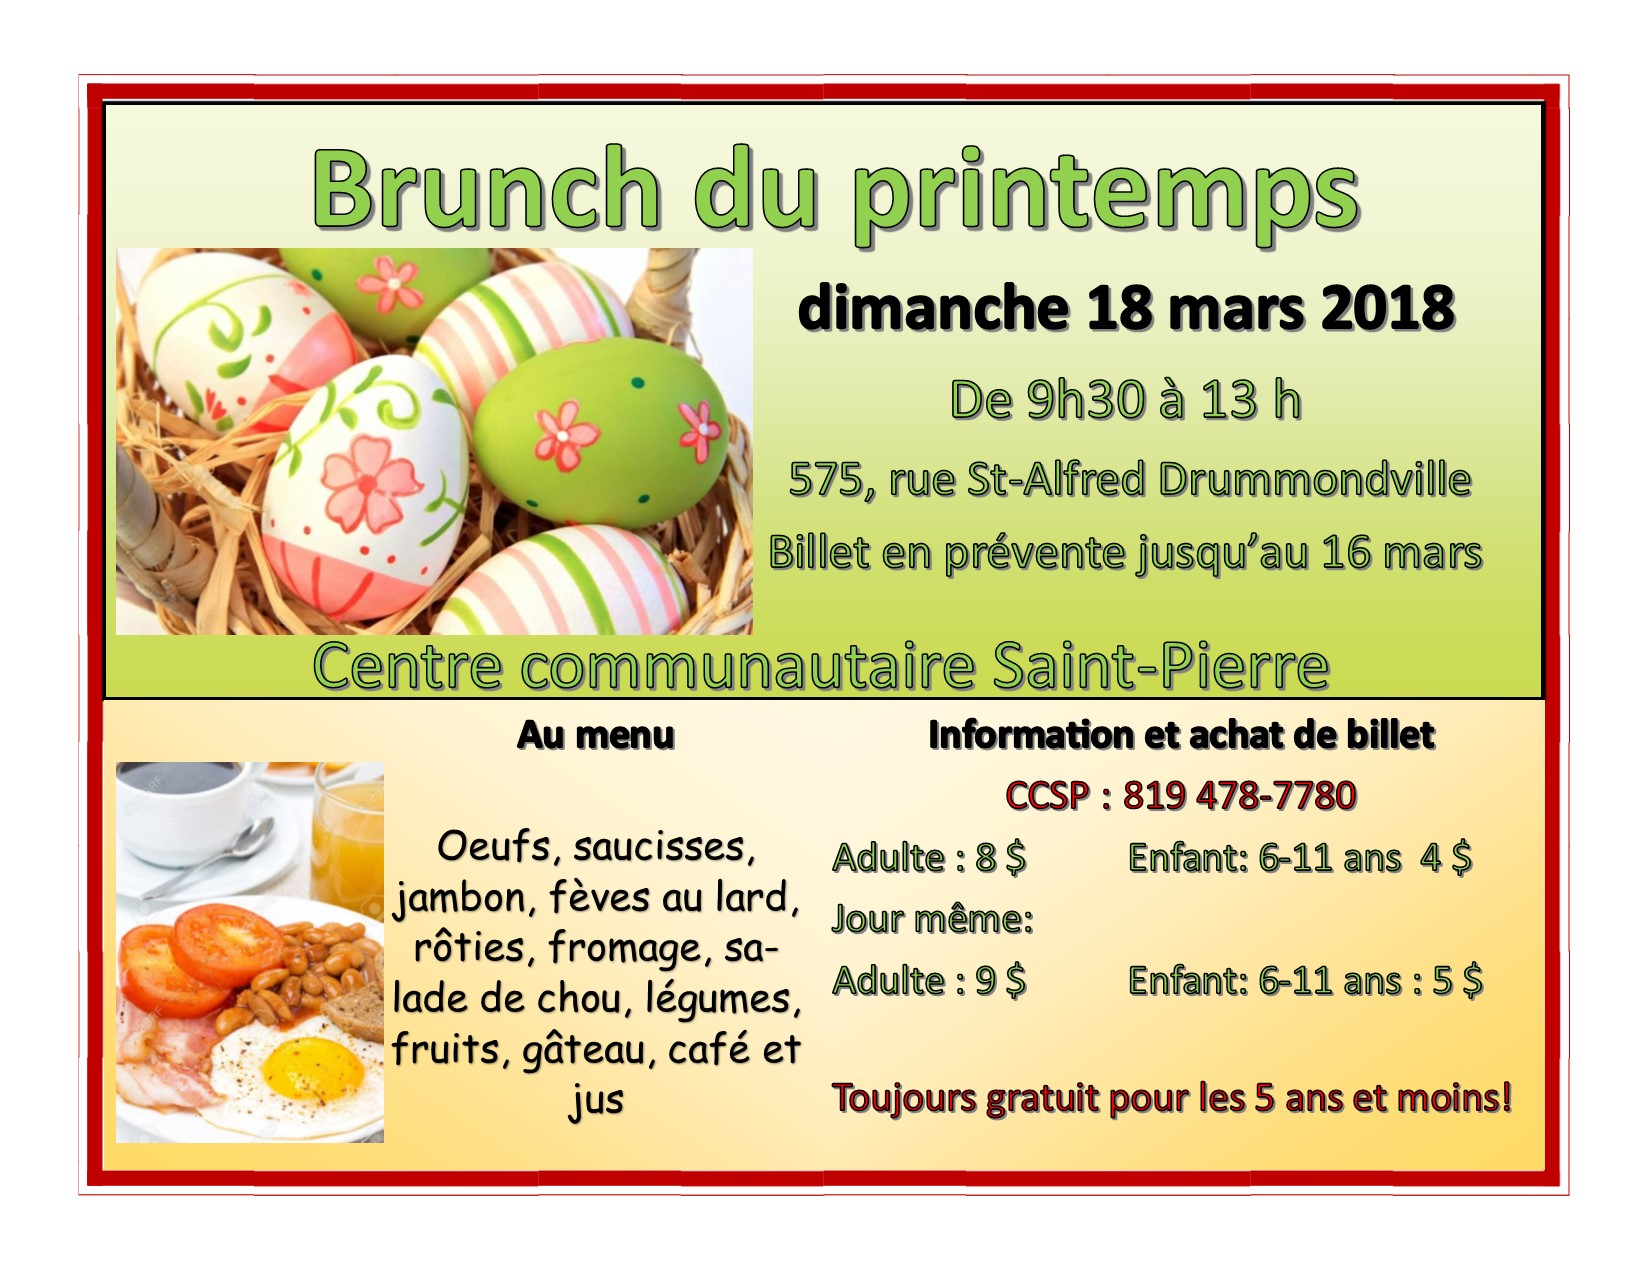 Brunch du printemps